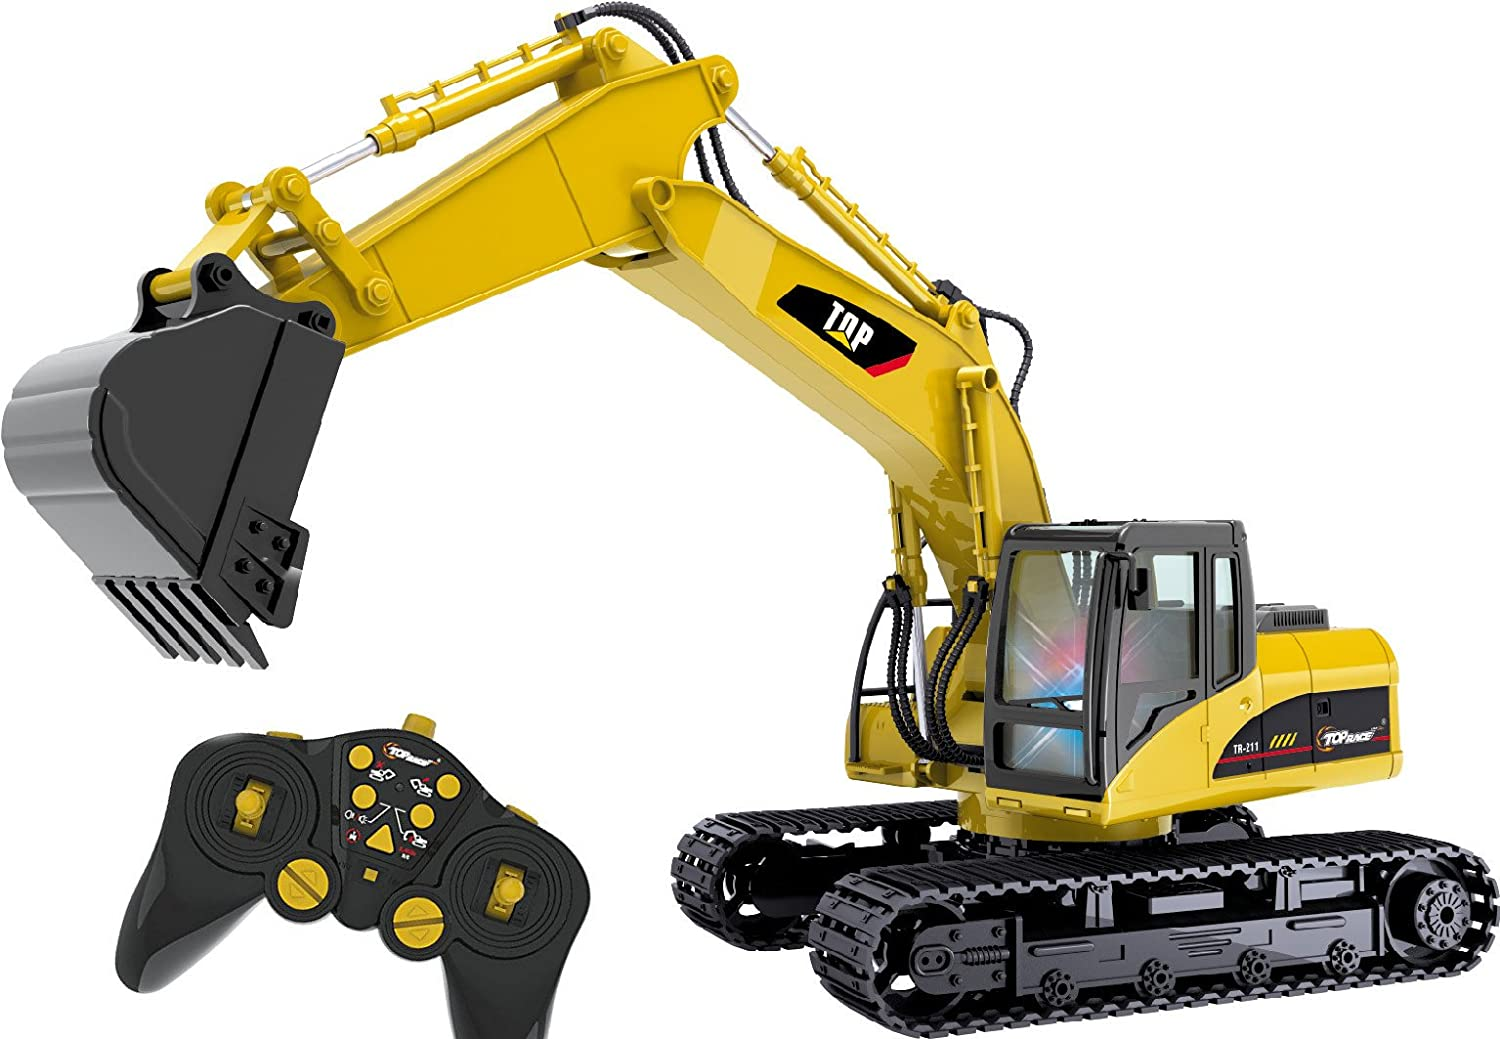 gas powered remote control trucks for sale with 231863946628 on Caterpillar Cat Kids Remote Control Bulldozer moreover 3826163218 additionally Watch together with WA WN2 7lA as well Low Rise Hip Hugger Coral Med.